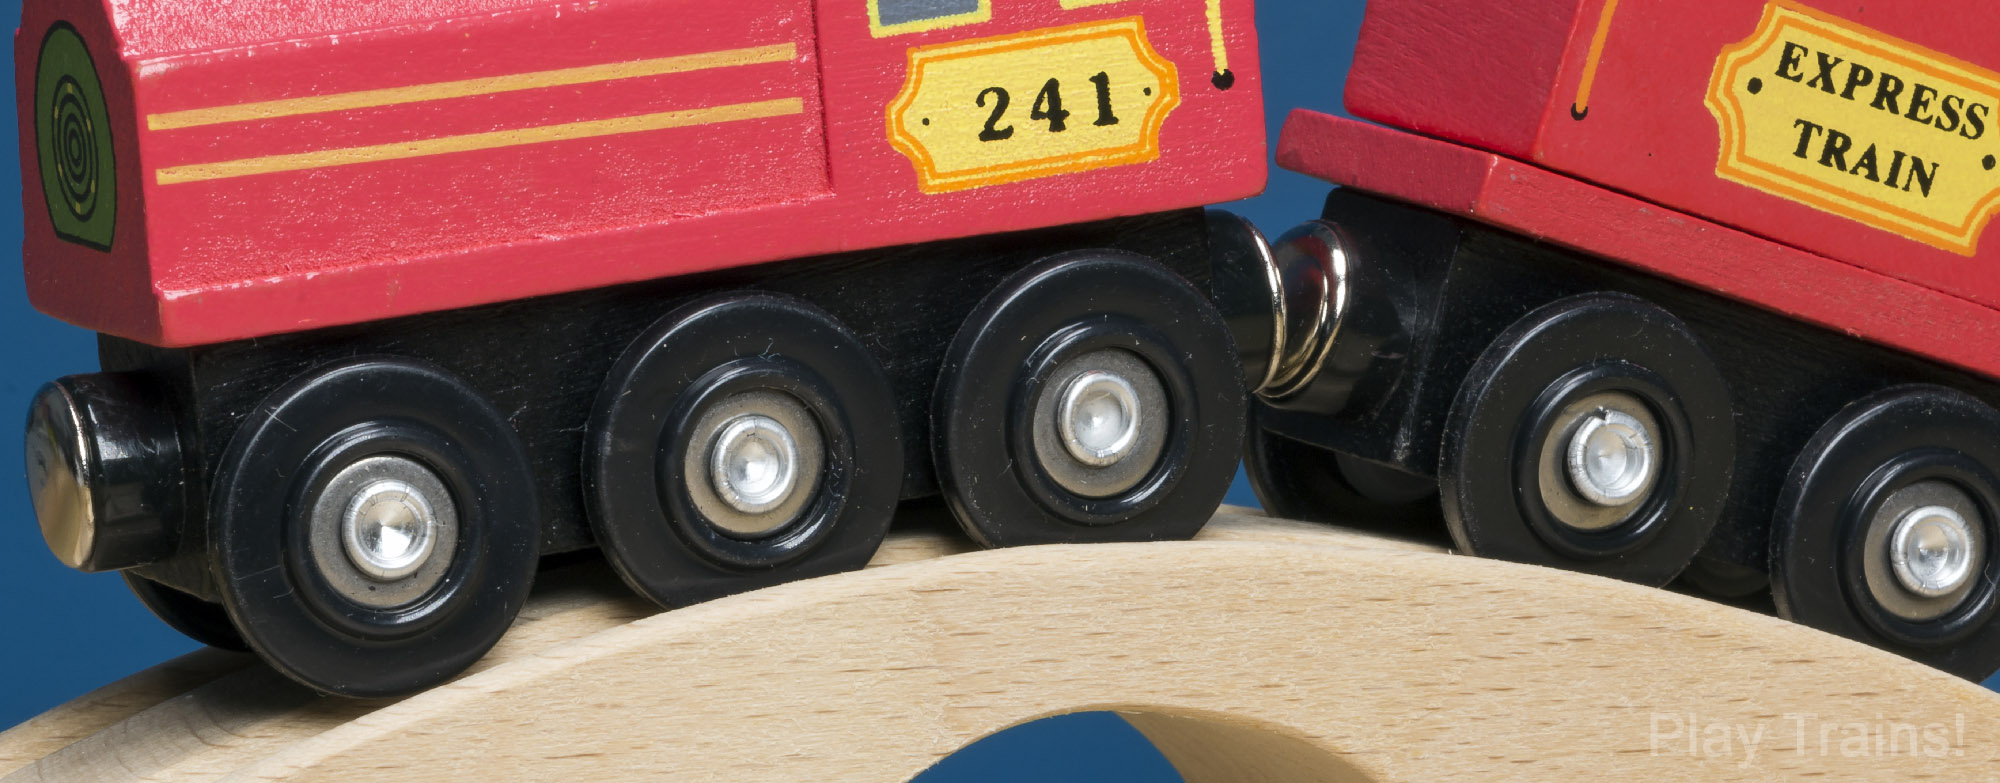 Melissa and Doug Wooden Train (wheels)  -- The Play Trains! Guide to Wooden Train Sets: expert advice on the best wooden train set to buy for your little engineer.